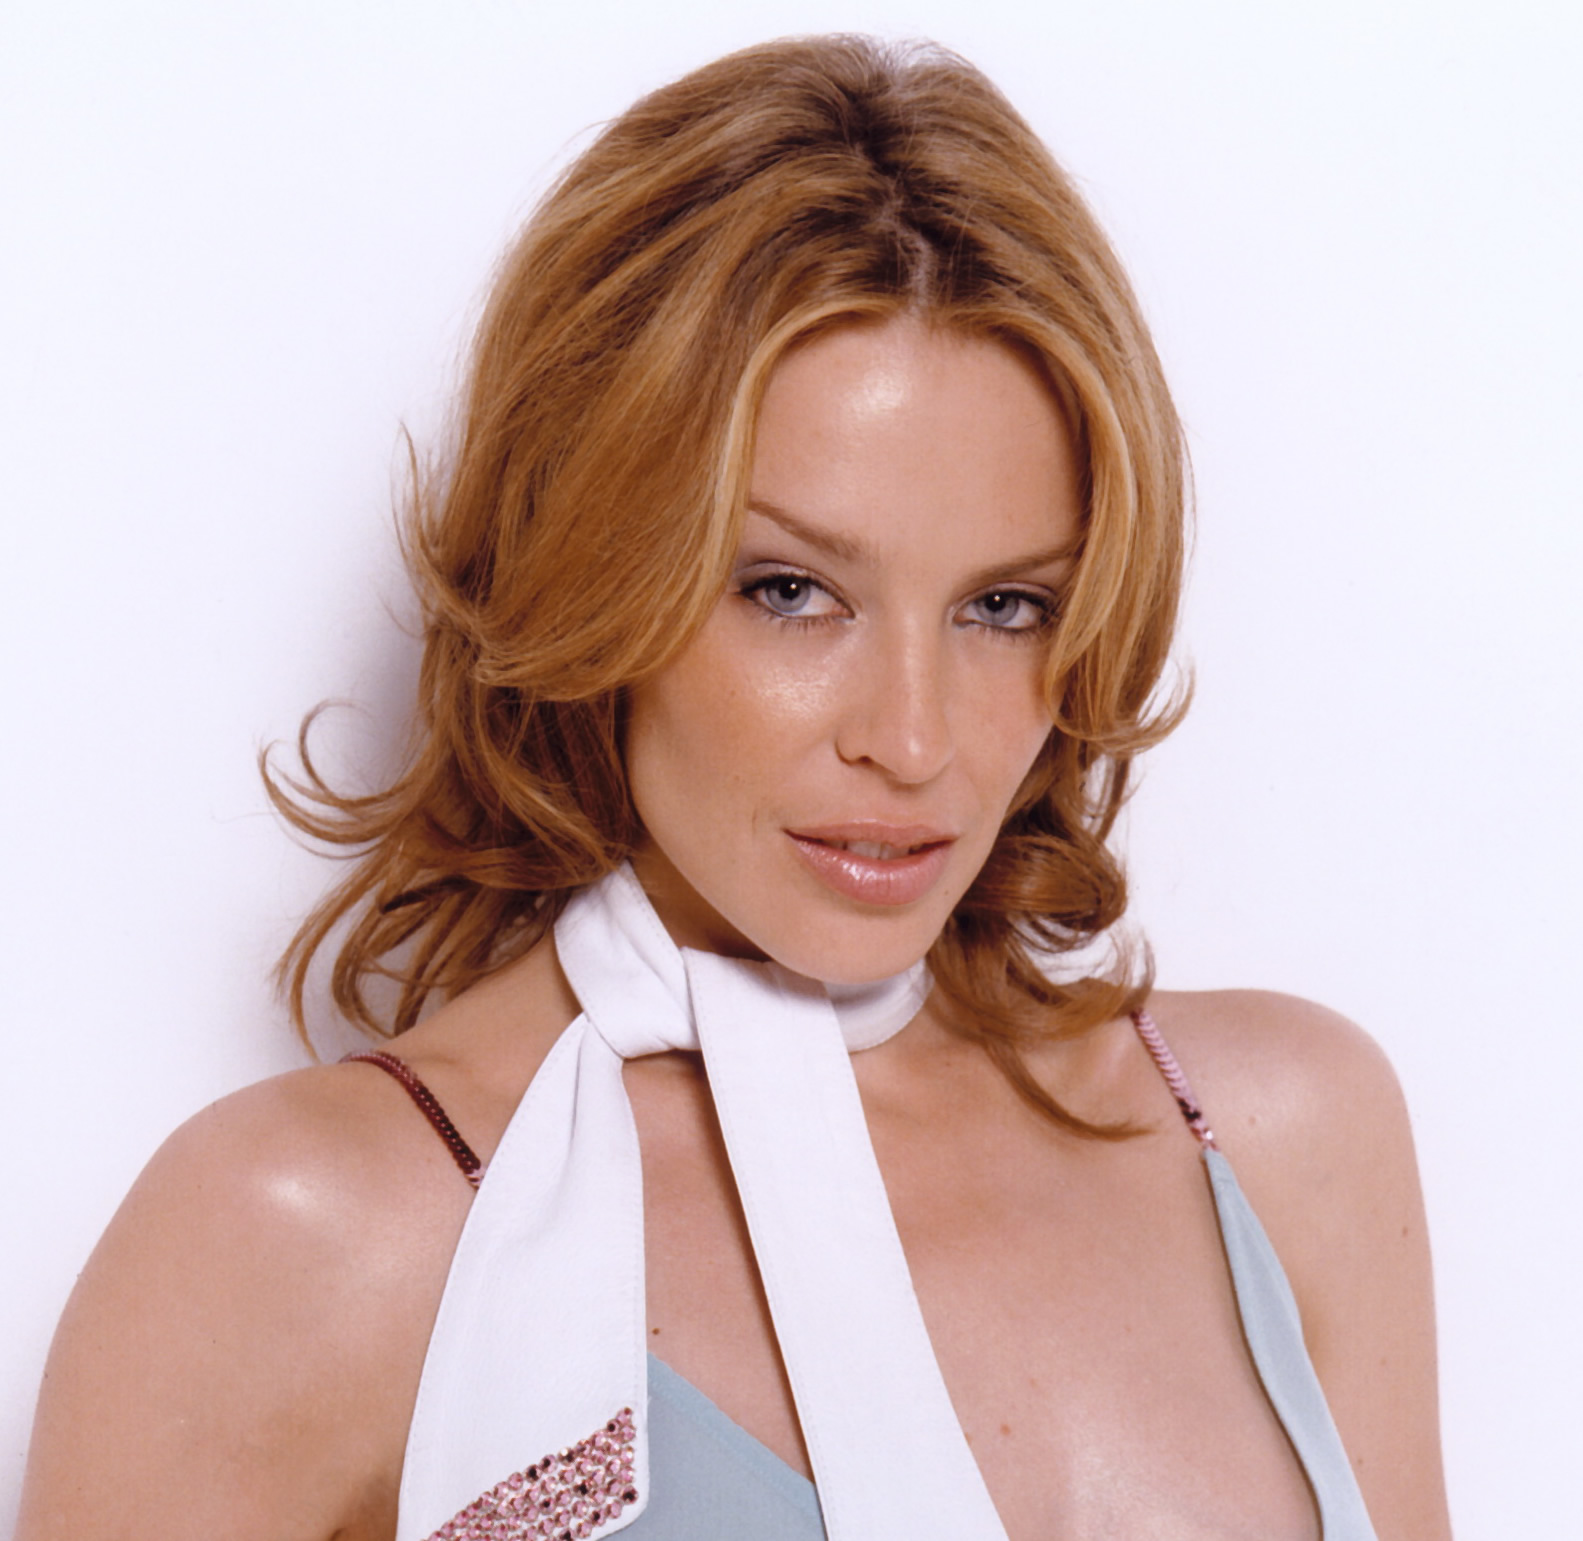 Actress Kylie Minogue - age: 49